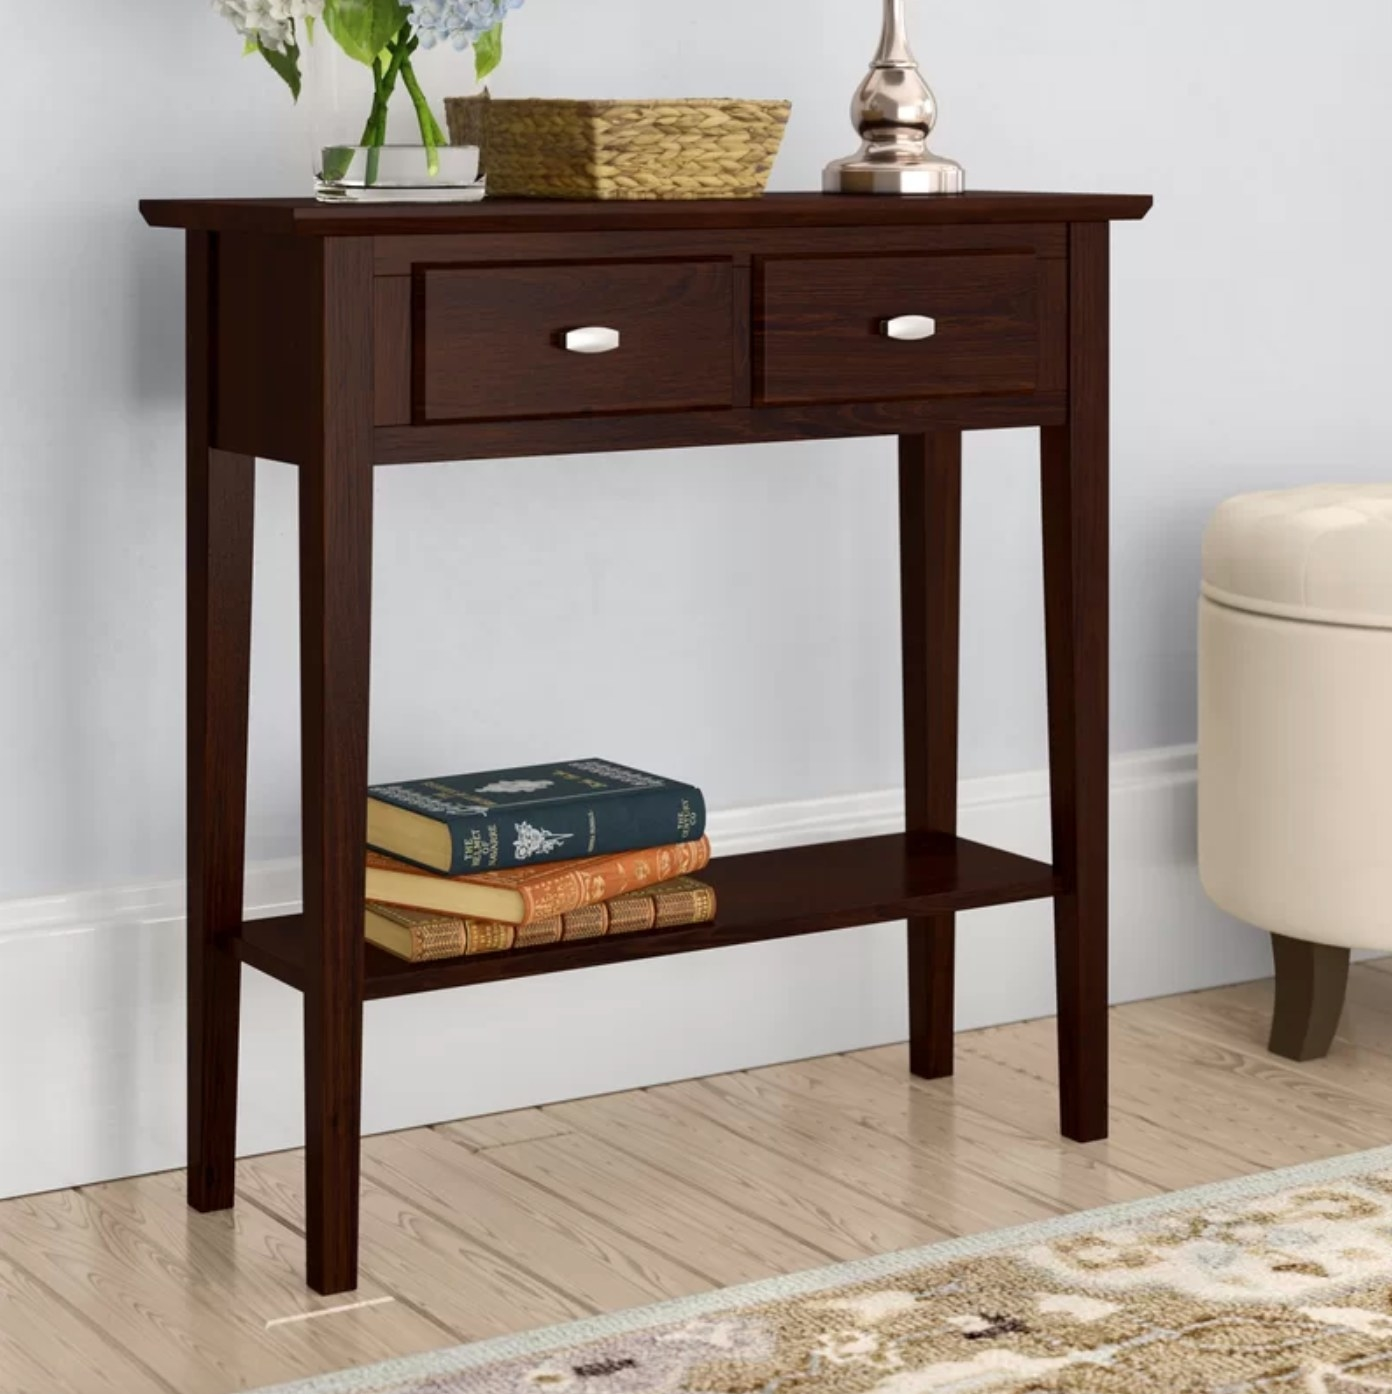 The solid wood console in chocolate oak